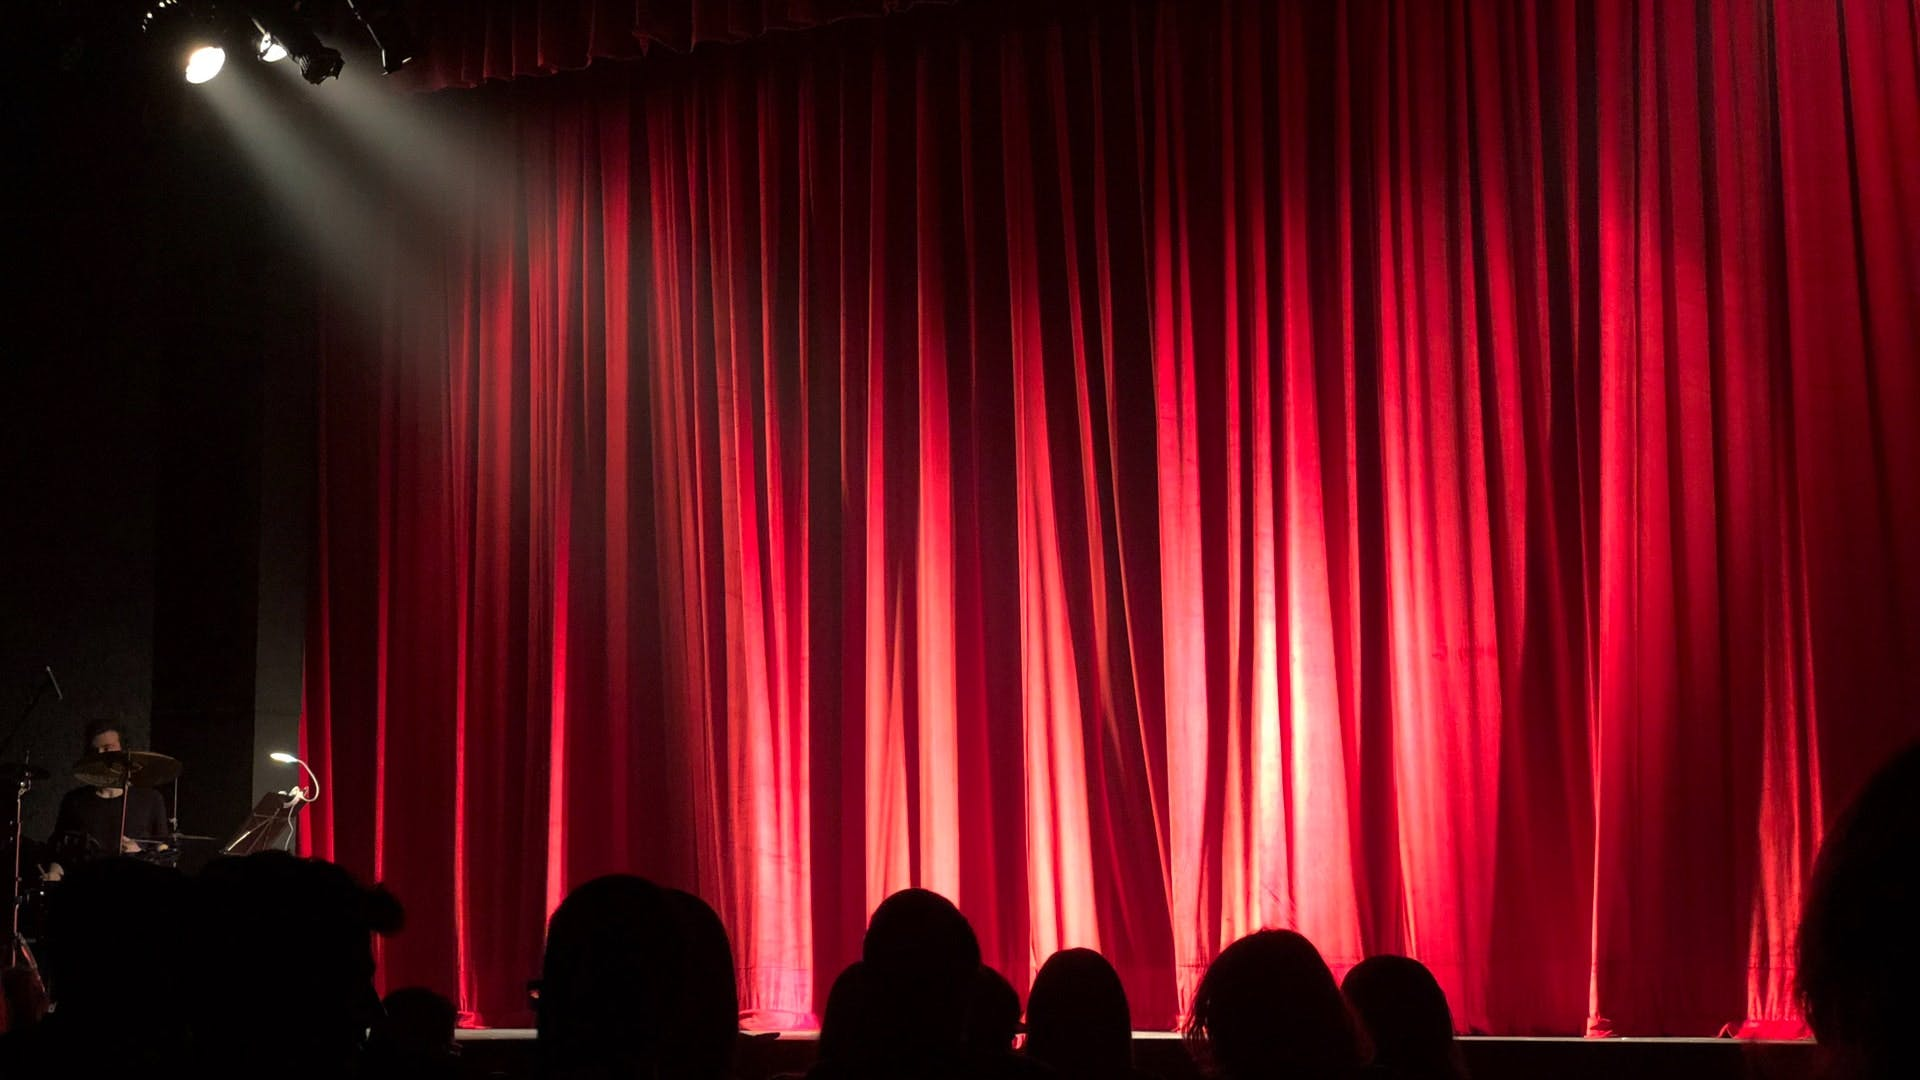 Curtain,Theater curtain,Stage,Theatre,Window treatment,Red,Light,Interior design,Textile,heater